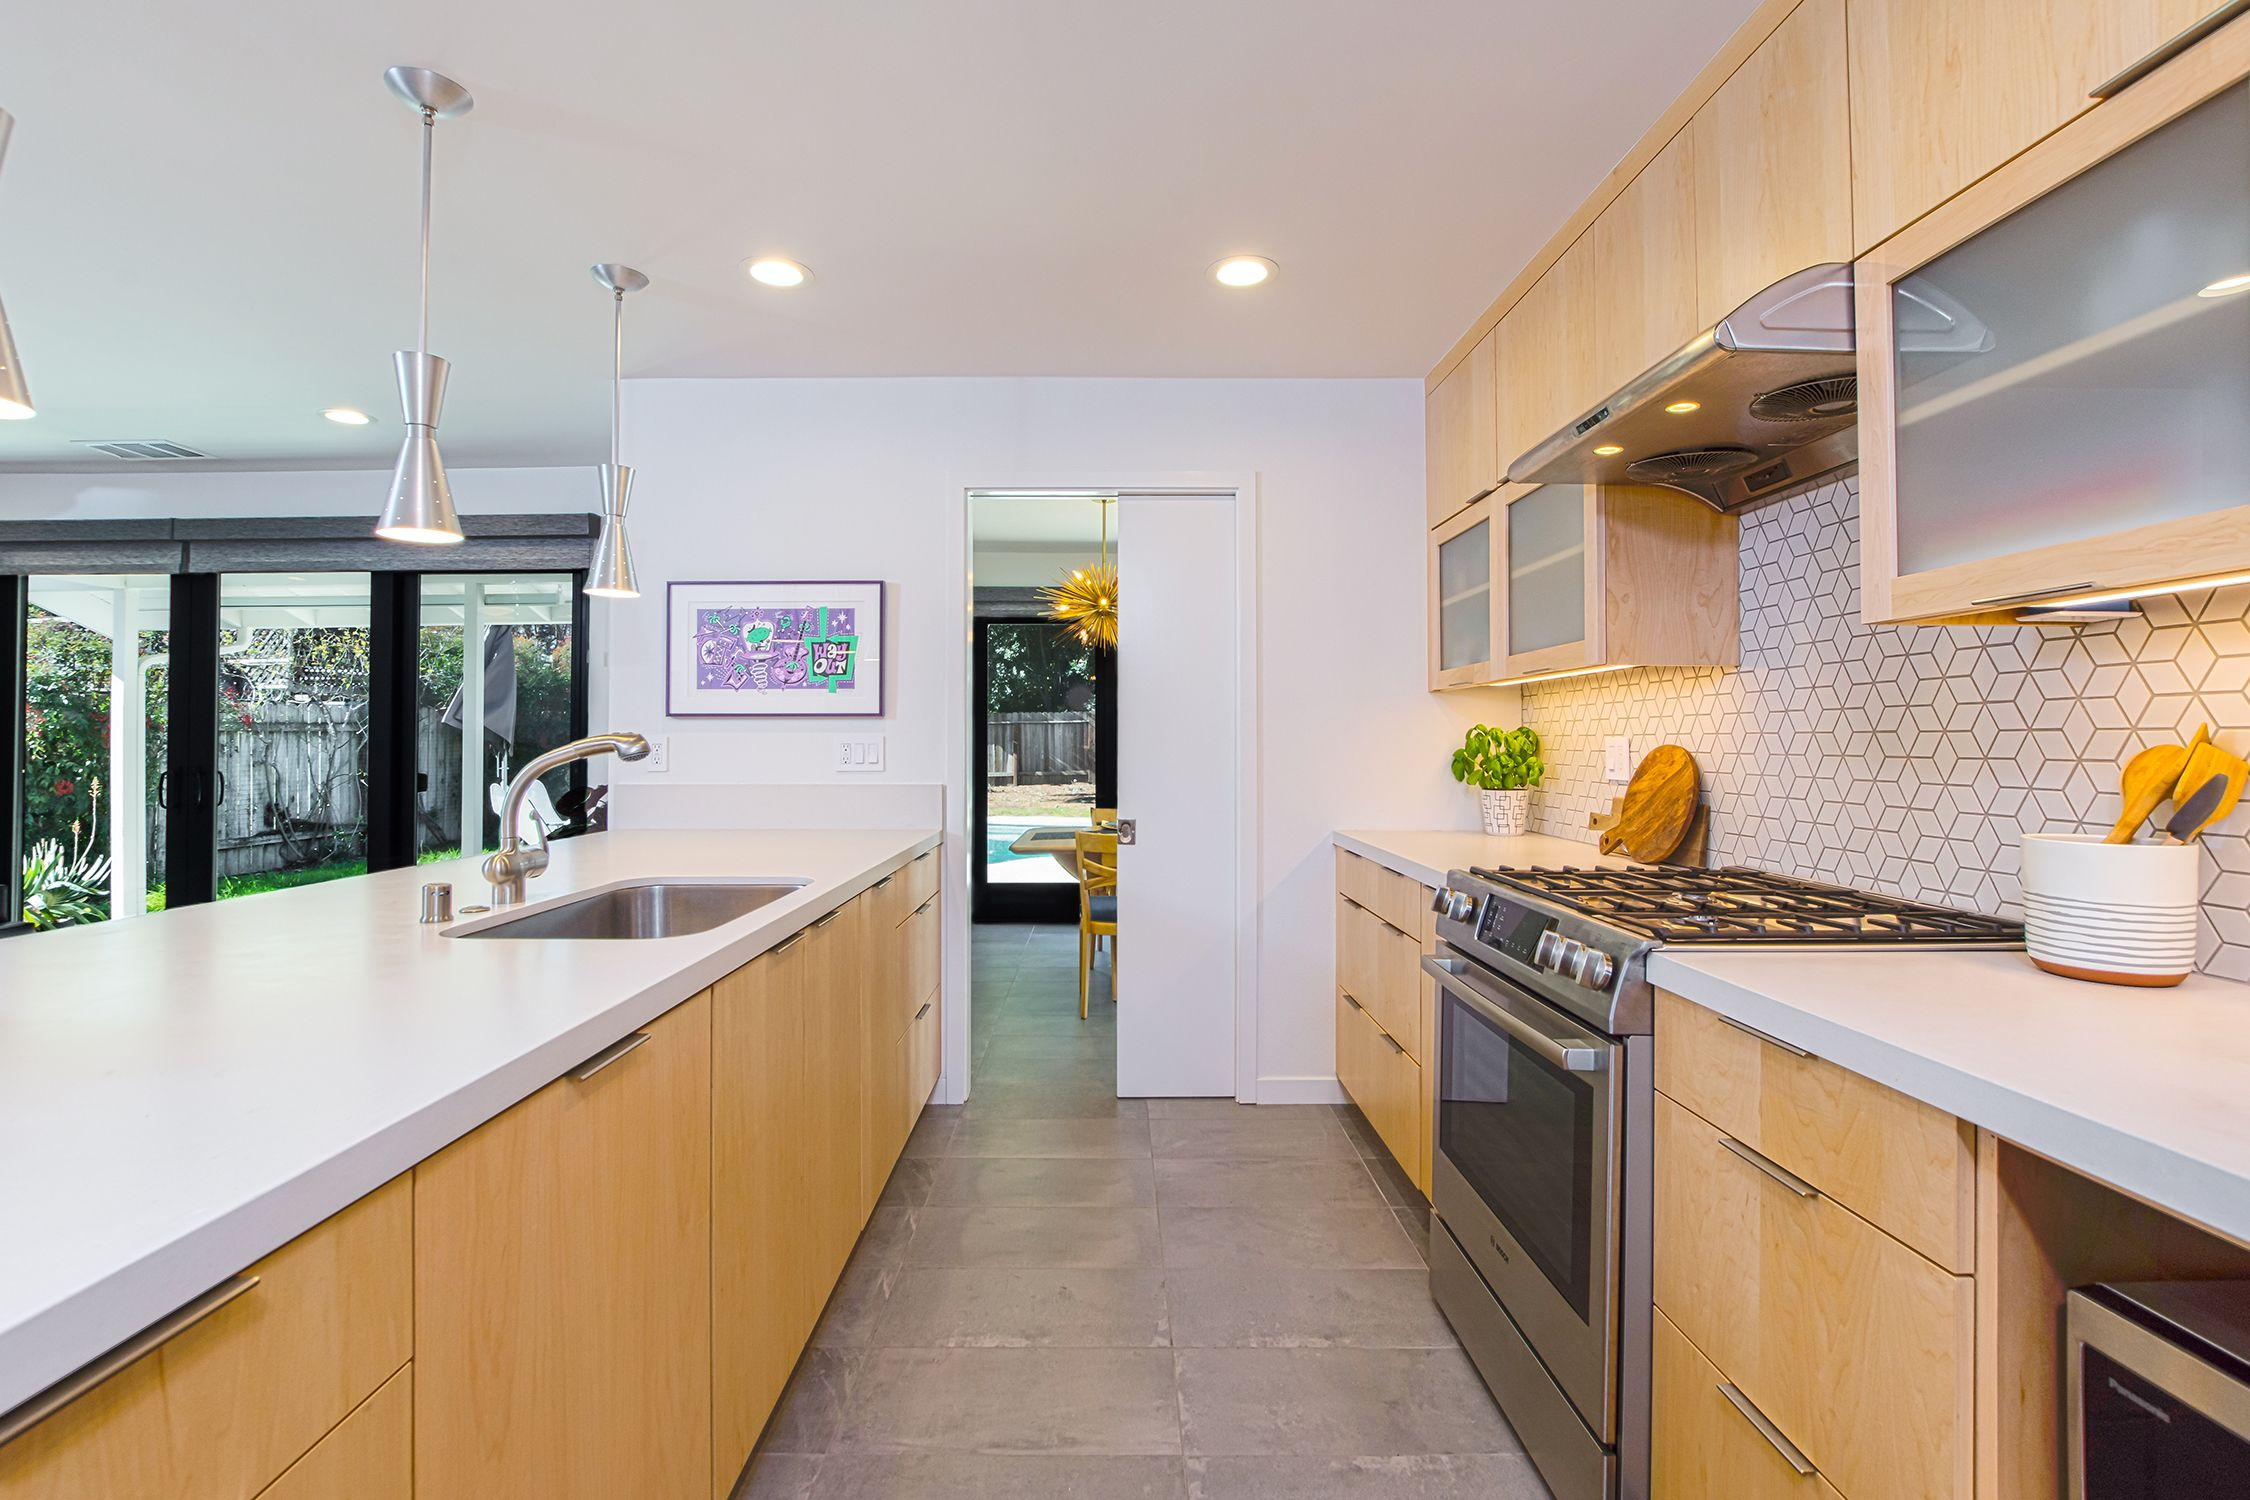 Palm Springs Style Kitchen With Pendant Lighting Kitchen Styling Mexican Style Kitchens Palm Springs Style